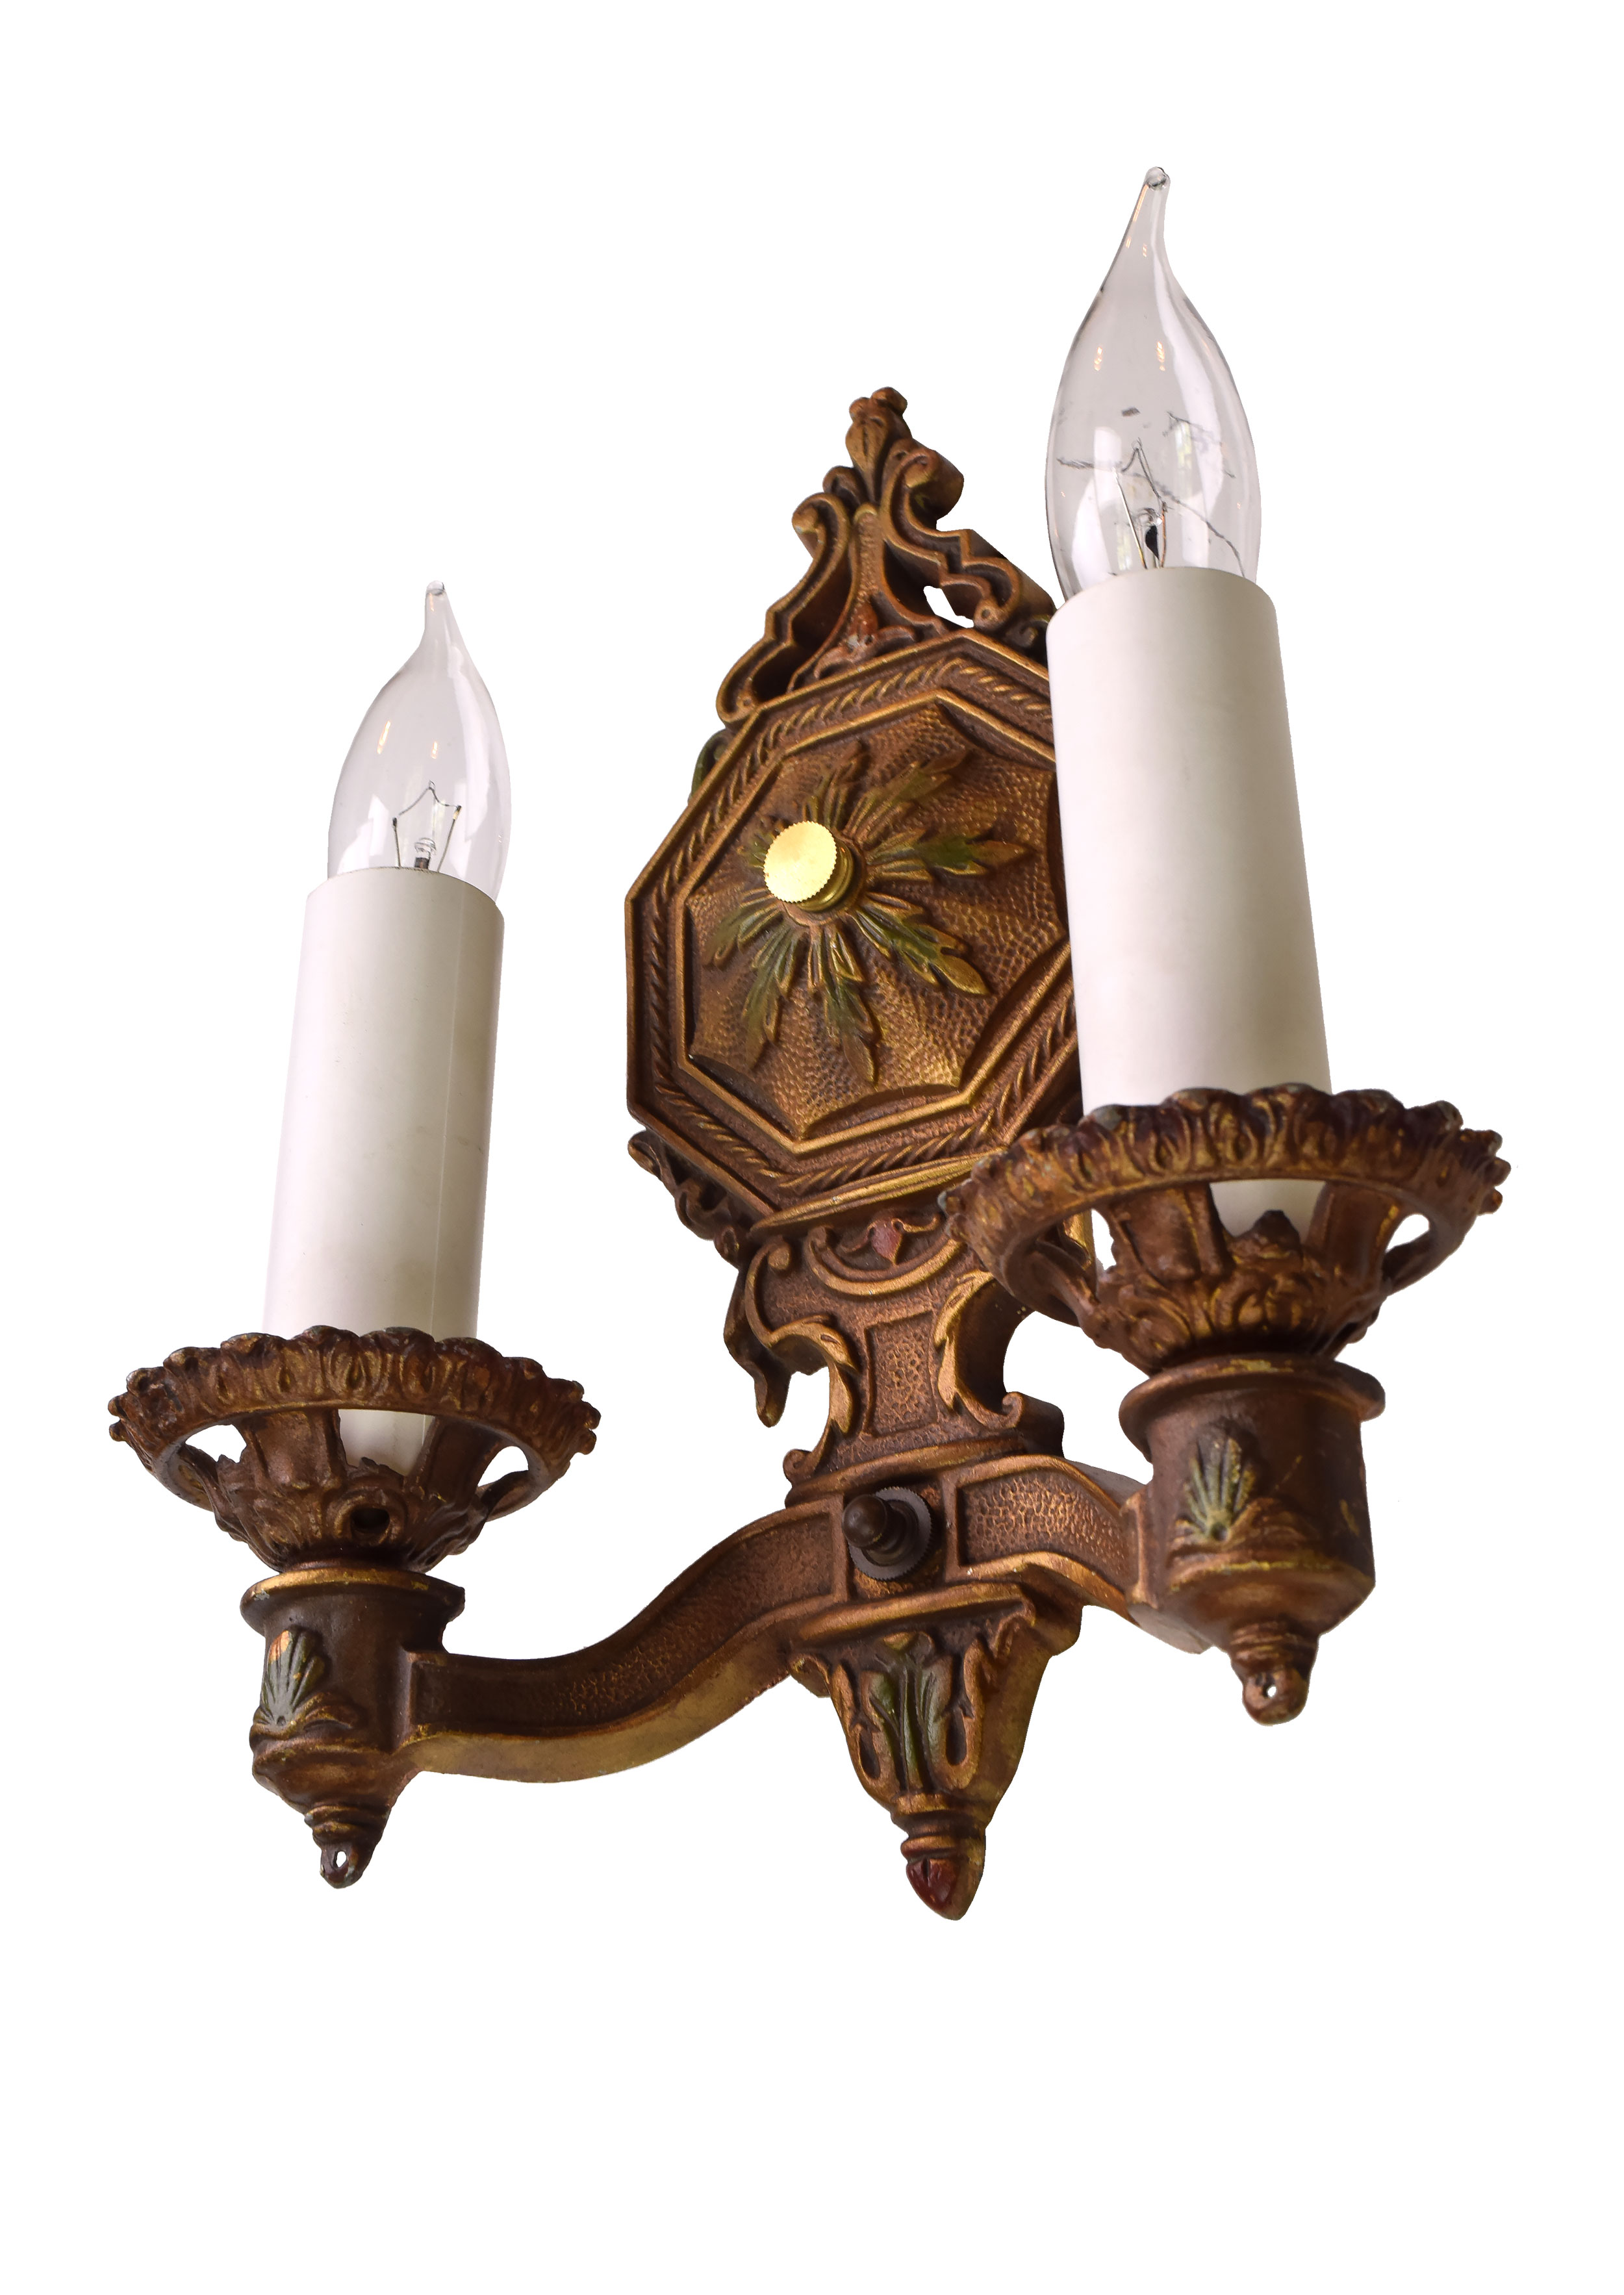 47081-aluminum-sconce-angle-view.jpg